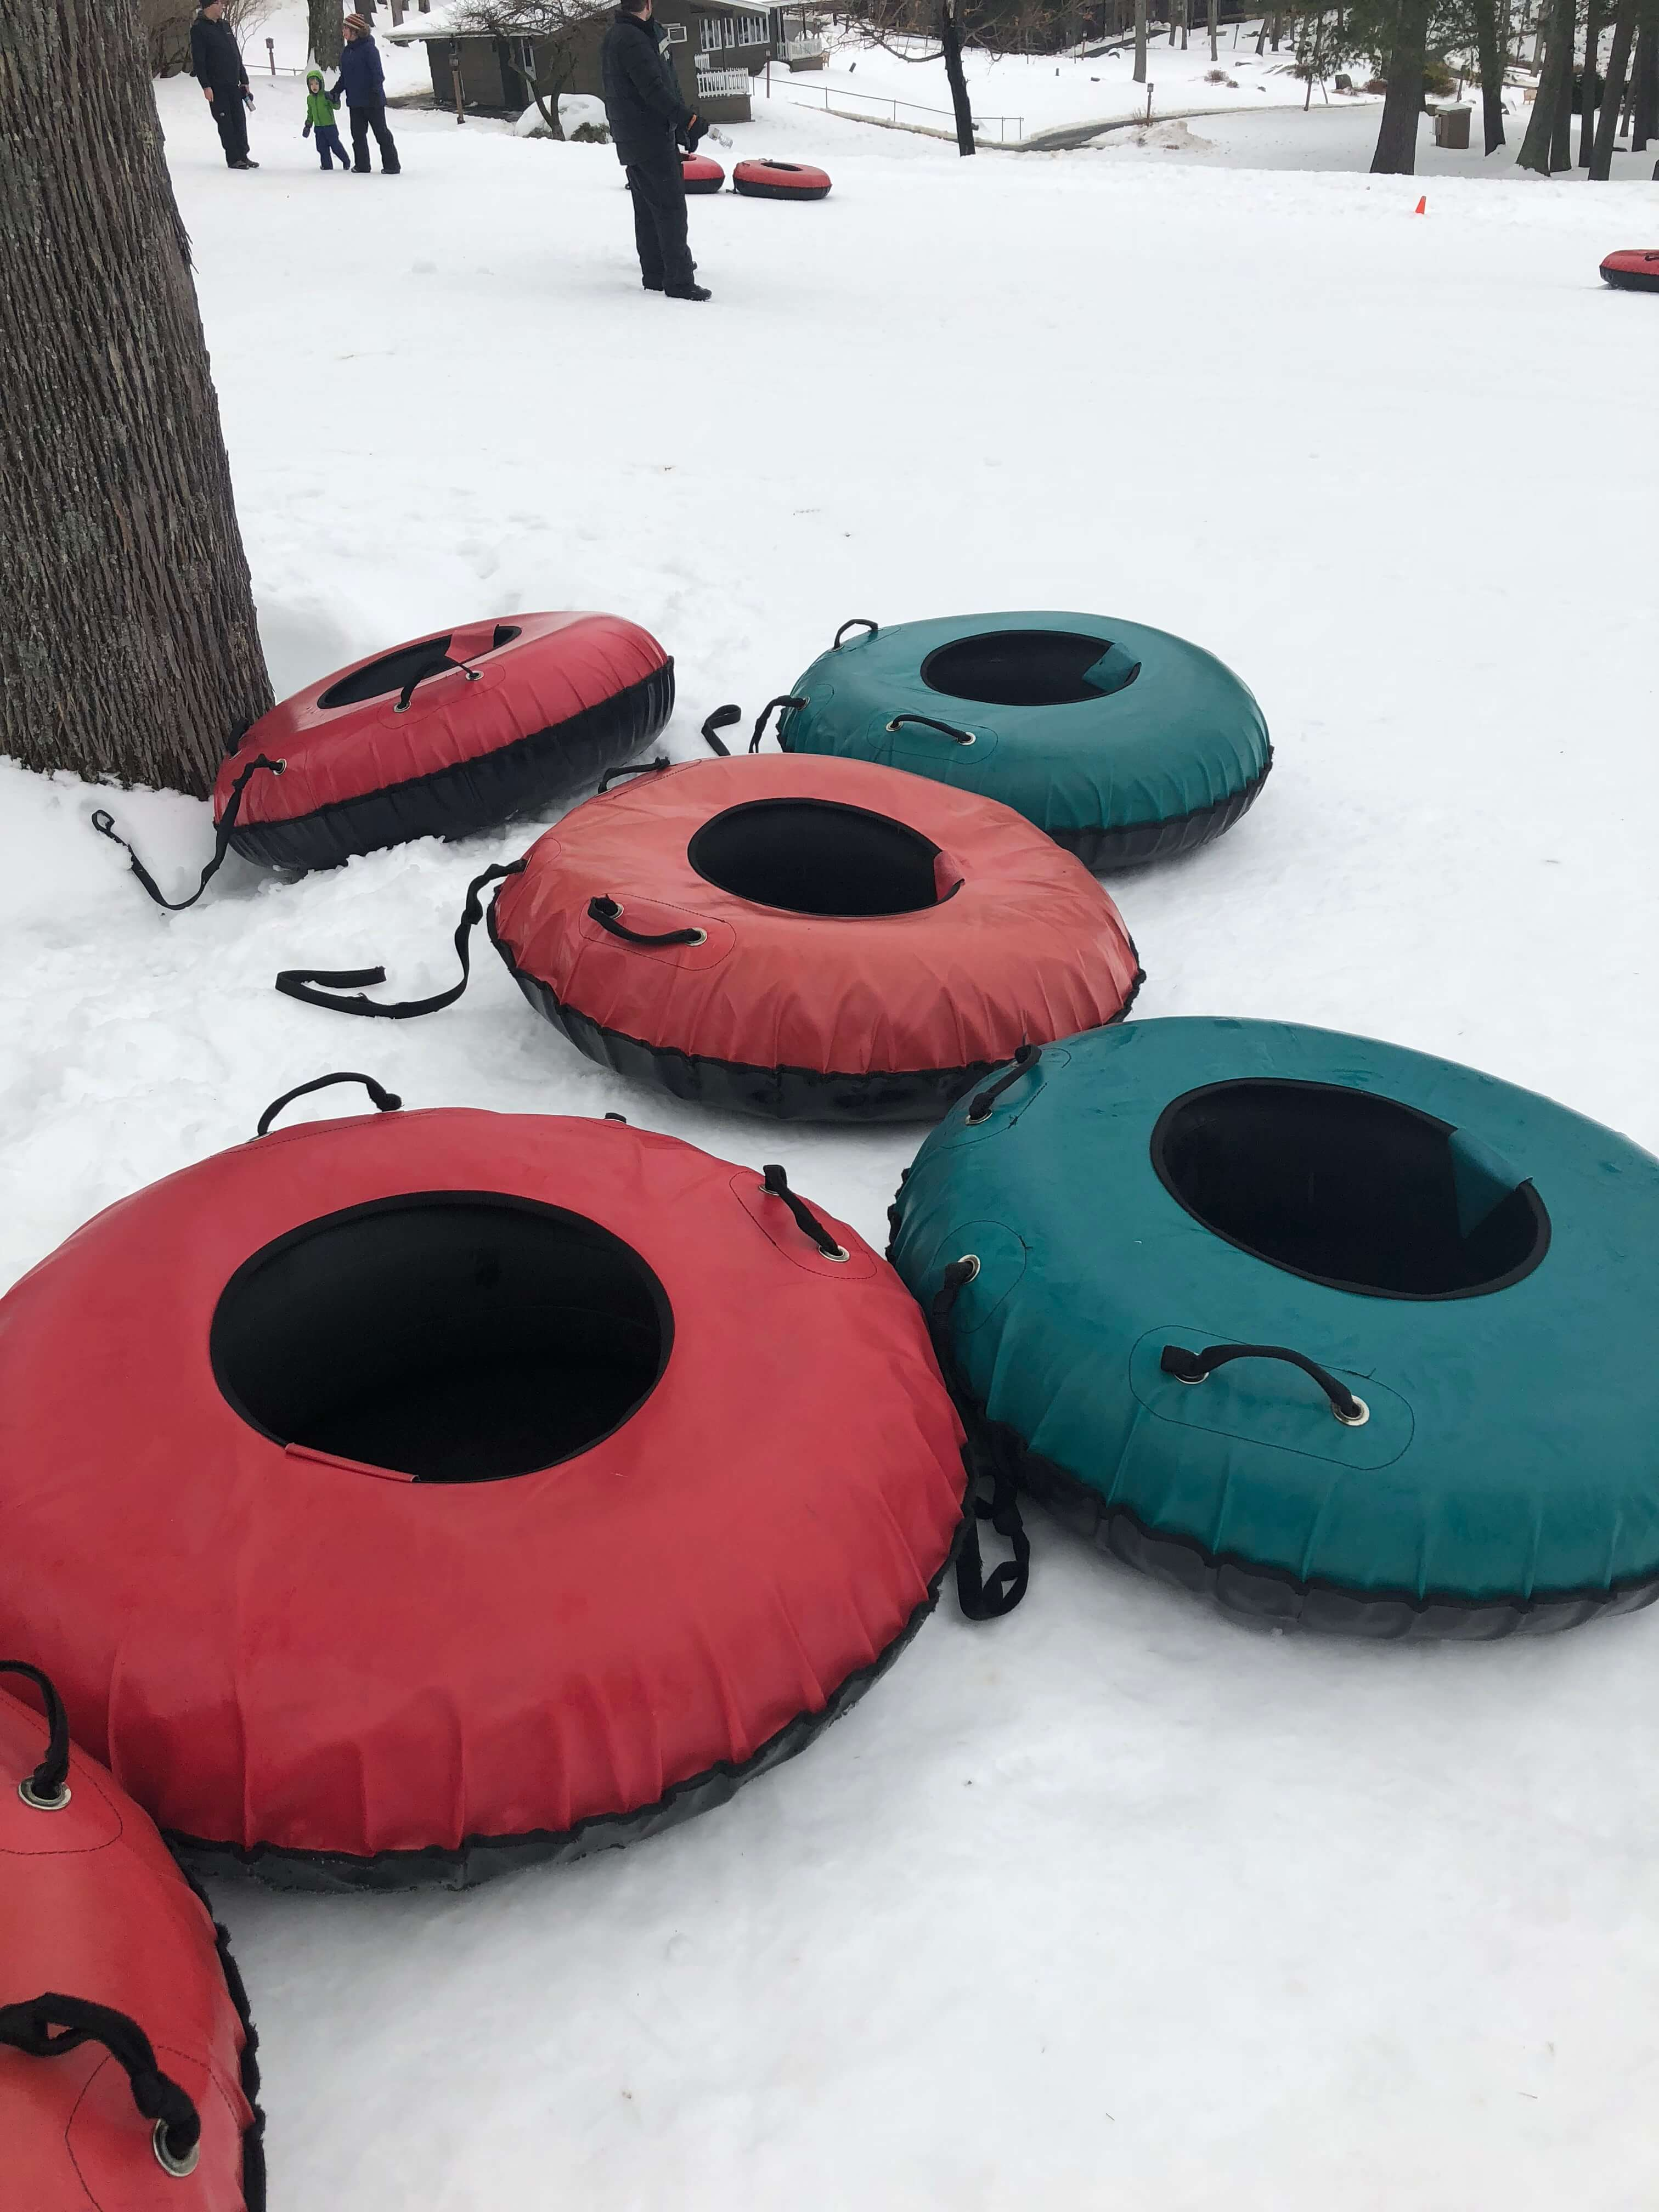 snow tubing for families at woodloch